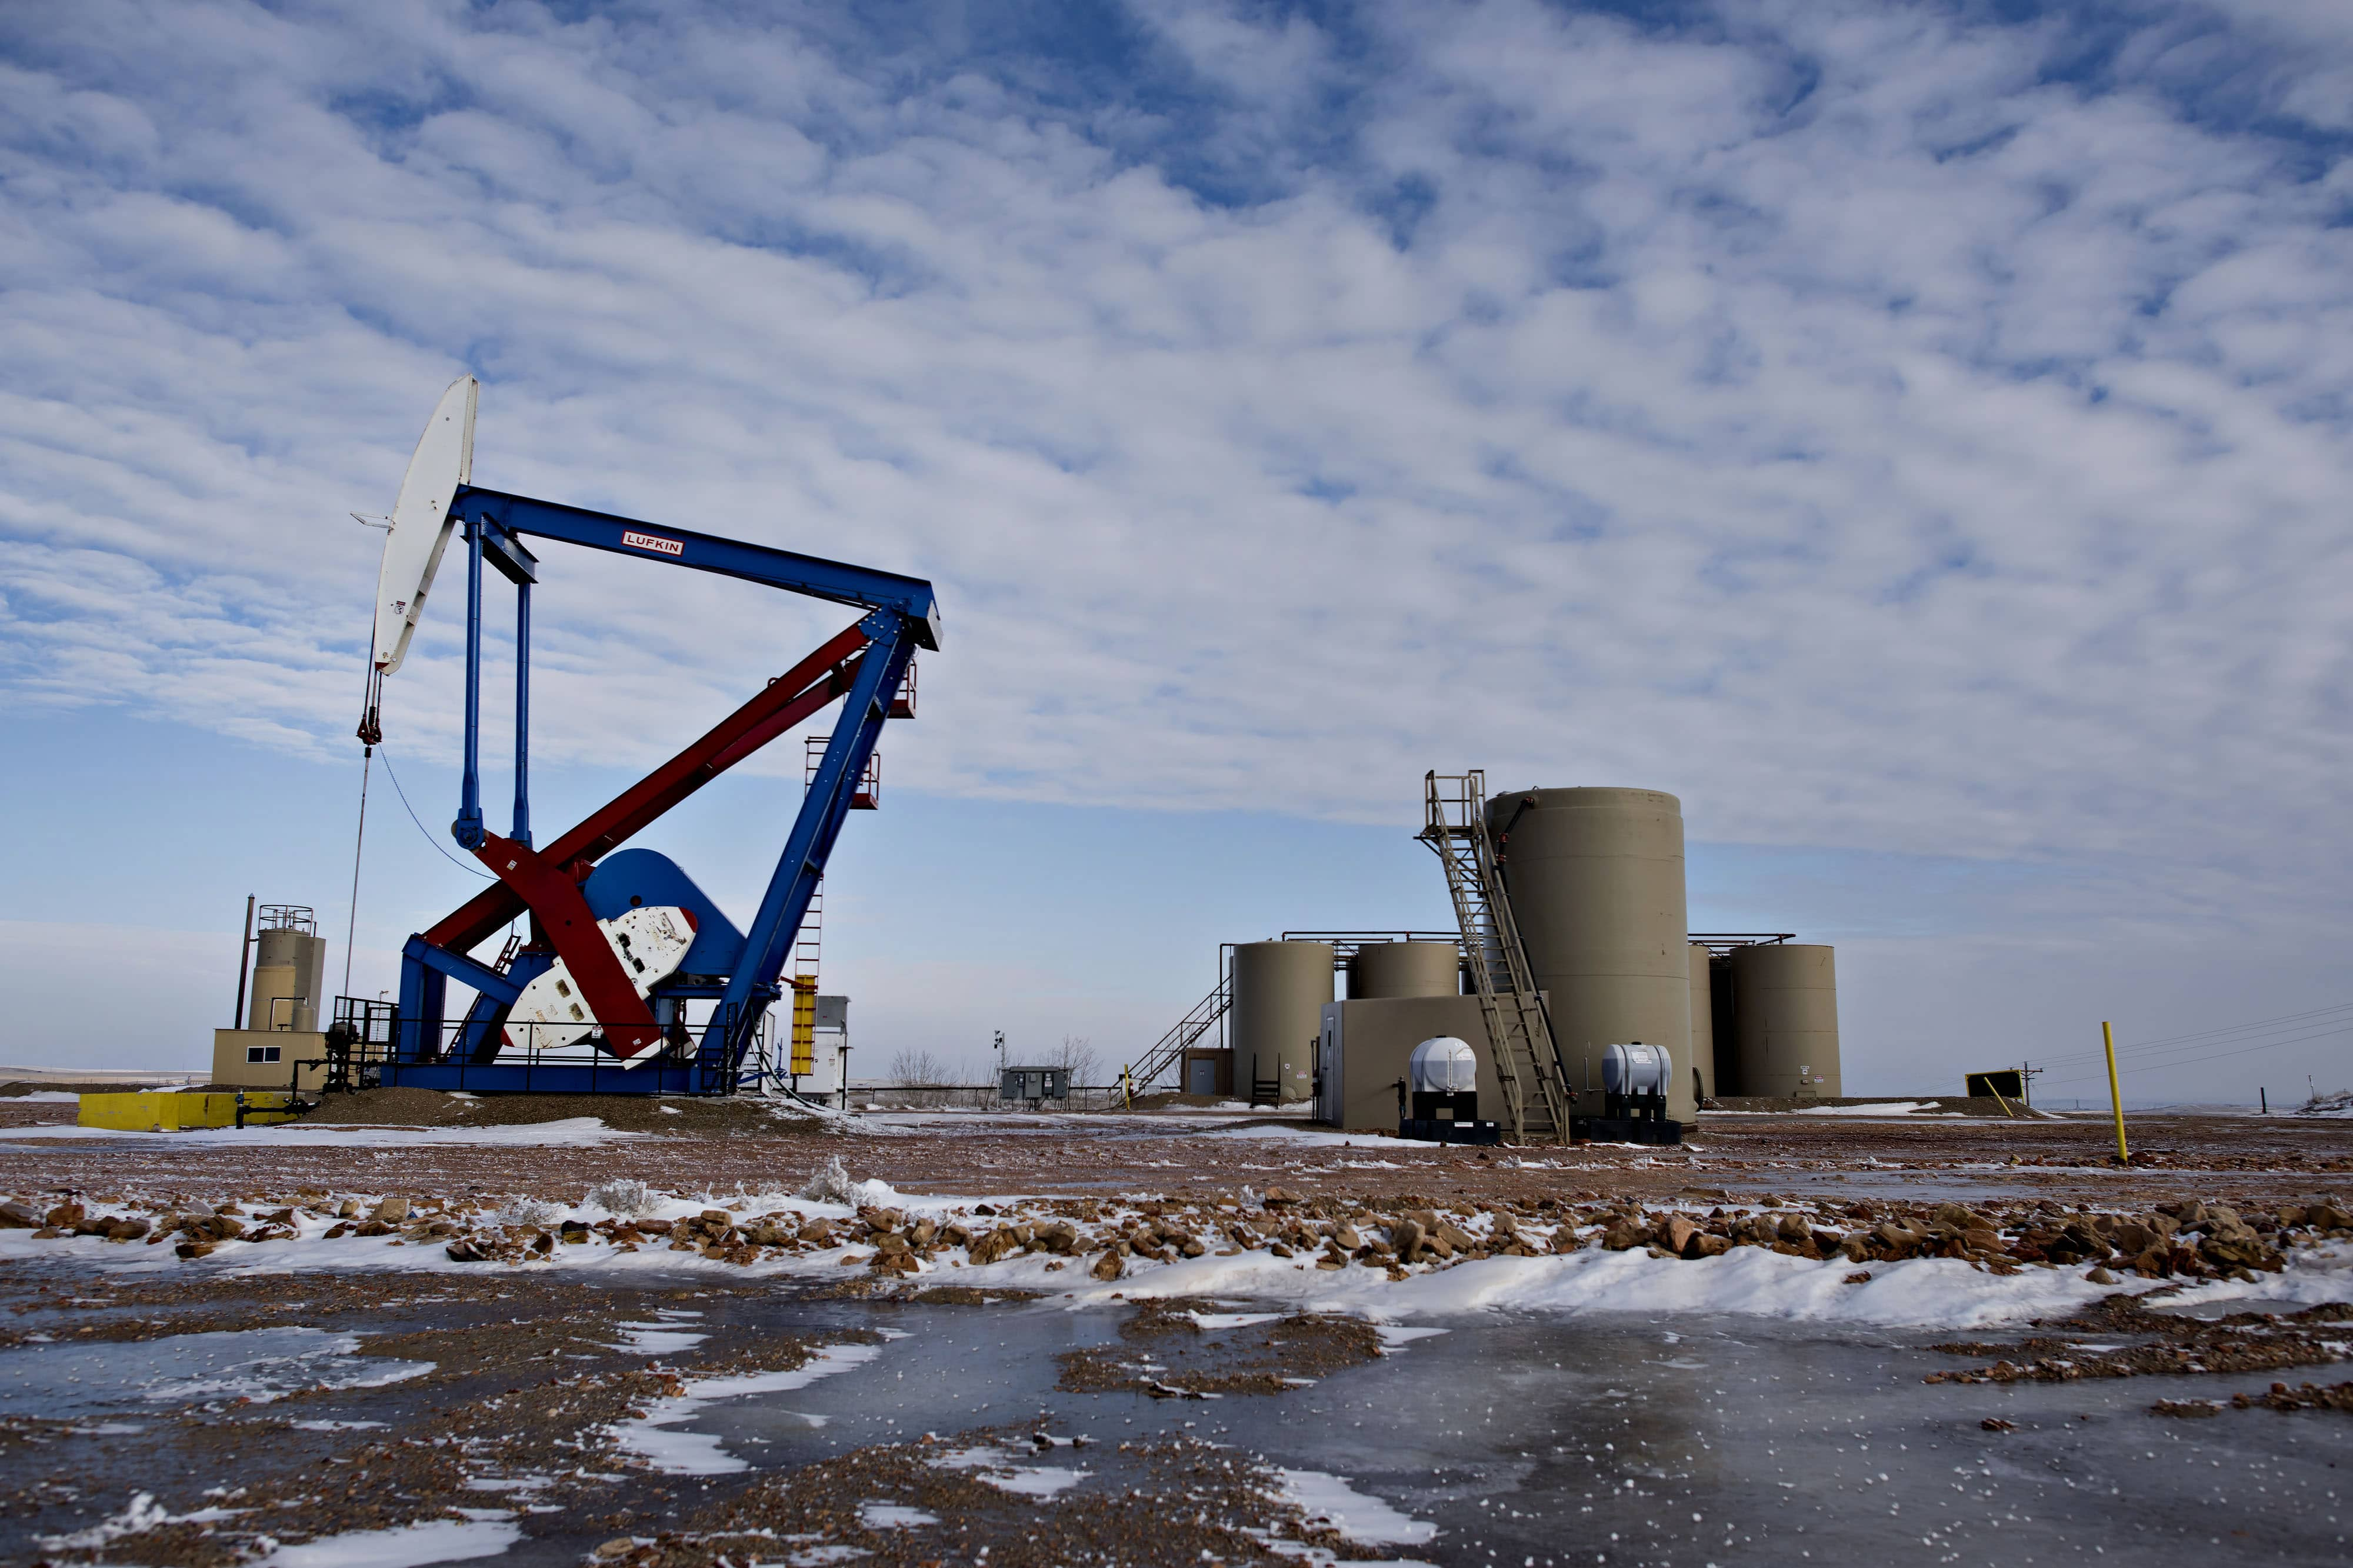 Why Is the Price of Oil so Low?